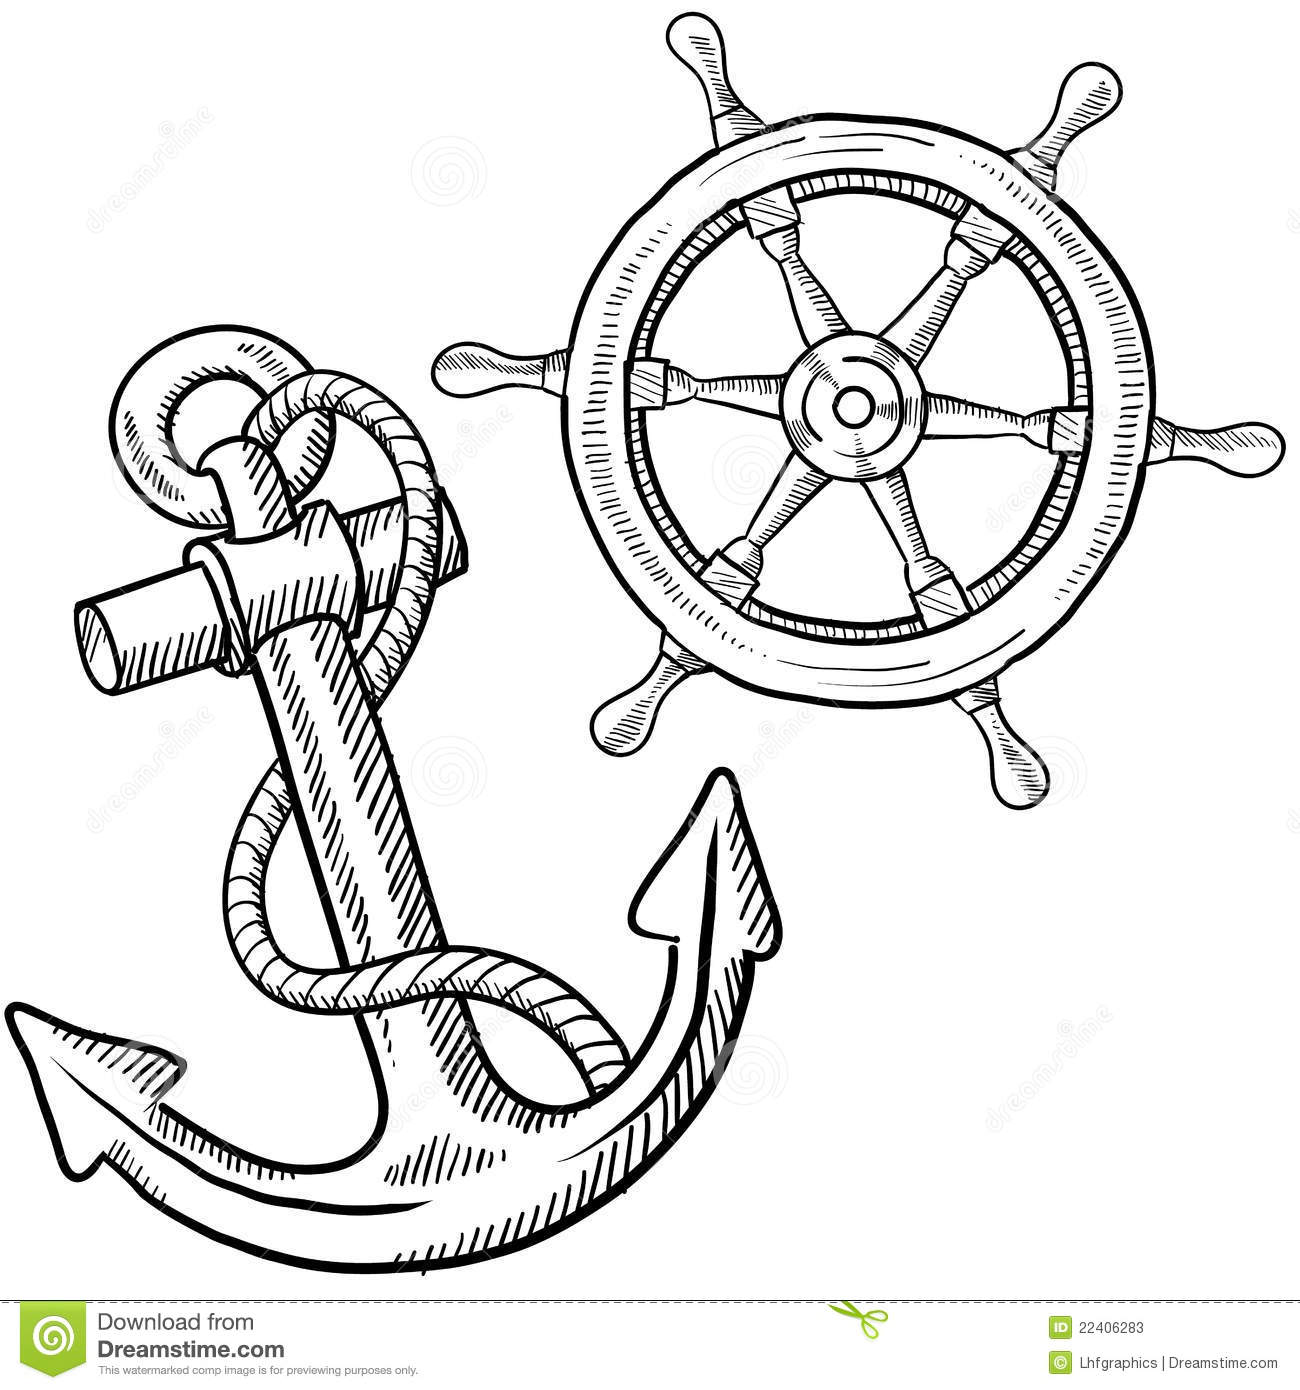 Stock Illustration Pirate Icons Skull Chest Pirates Treasure Map Pirates Hat Sword Vector Image68941333 furthermore Blank Animal Cell Diagram To Label additionally Transformers Autobot Outline Decal Sticker furthermore Stock Illustration Cargo Ship Containers Freehand Sketch Illustration Icon Doodle Hand Drawn Image60925176 also Stock Image Travel Icons Image19430531. on boat audio